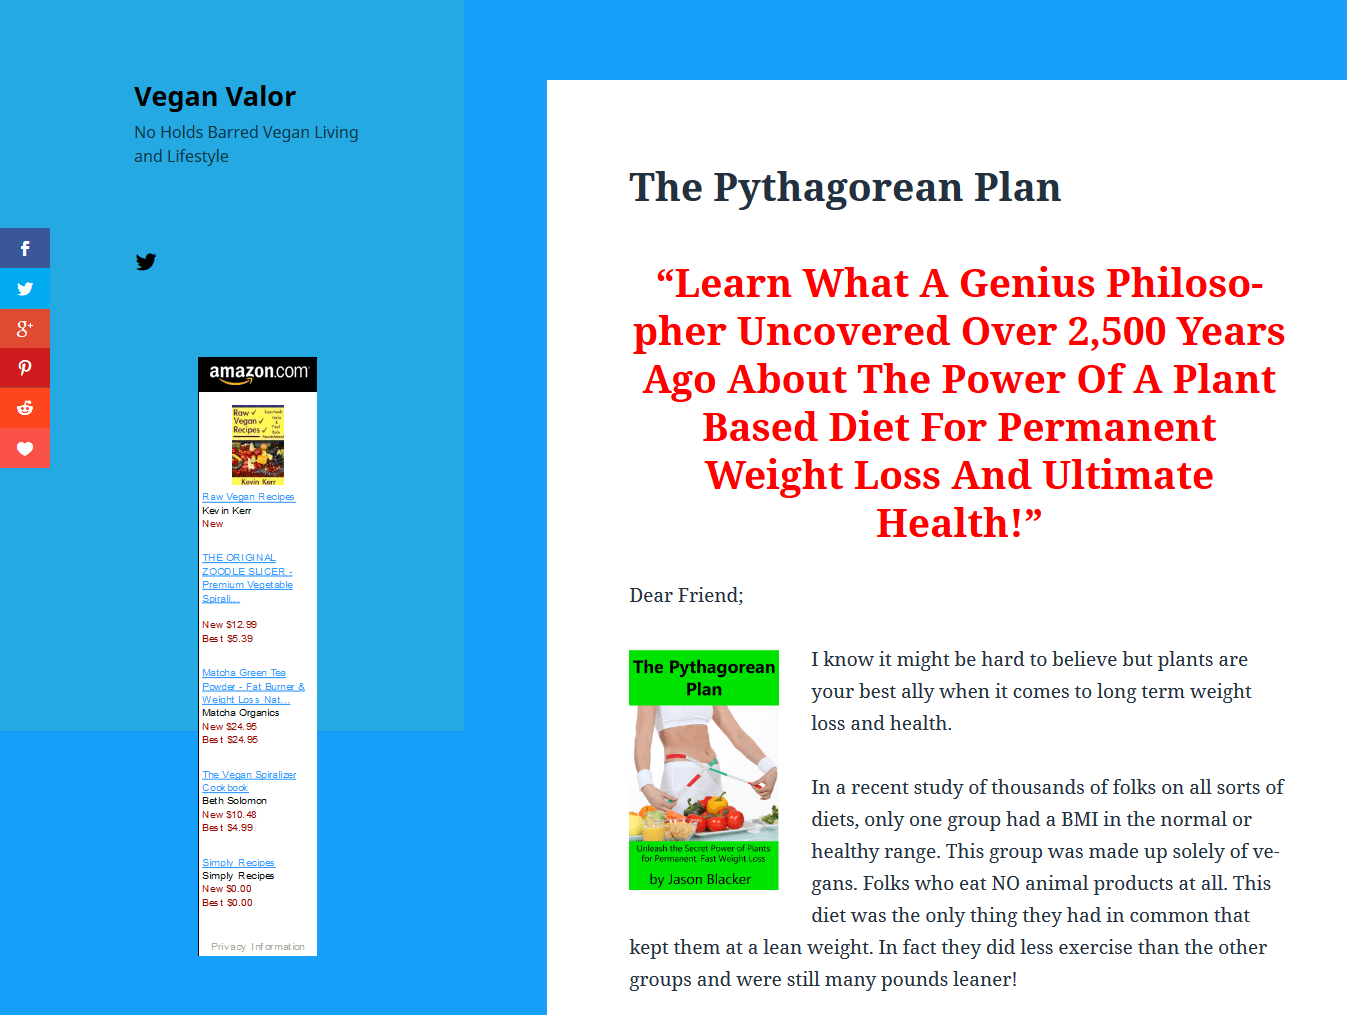 Pythagorean Plan Sales Page Top Section